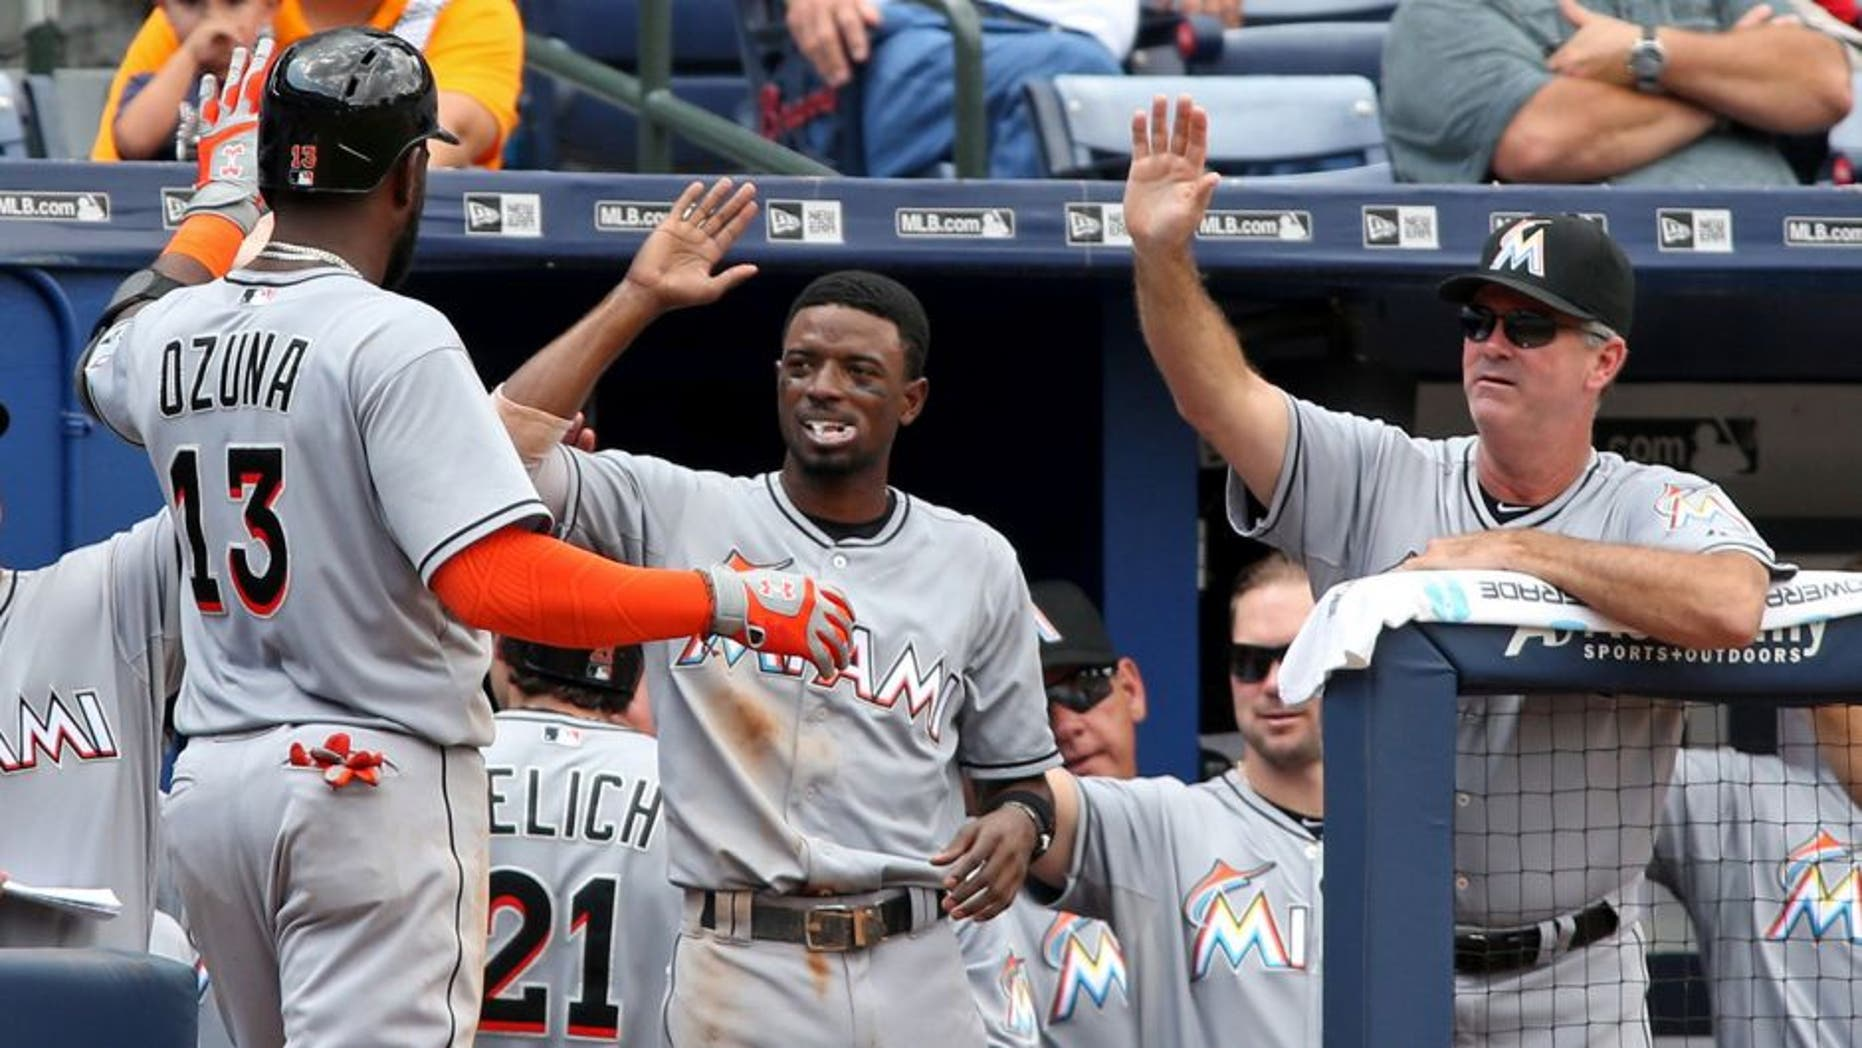 Sep 2, 2015; Atlanta, GA, USA; Miami Marlins center fielder Marcell Ozuna (13) celebrates his two-run home run with second baseman Dee Gordon (center) and manager Dan Jennings (26) in the fifth inning of their game against the Atlanta Braves at Turner Field. Mandatory Credit: Jason Getz-USA TODAY Sports